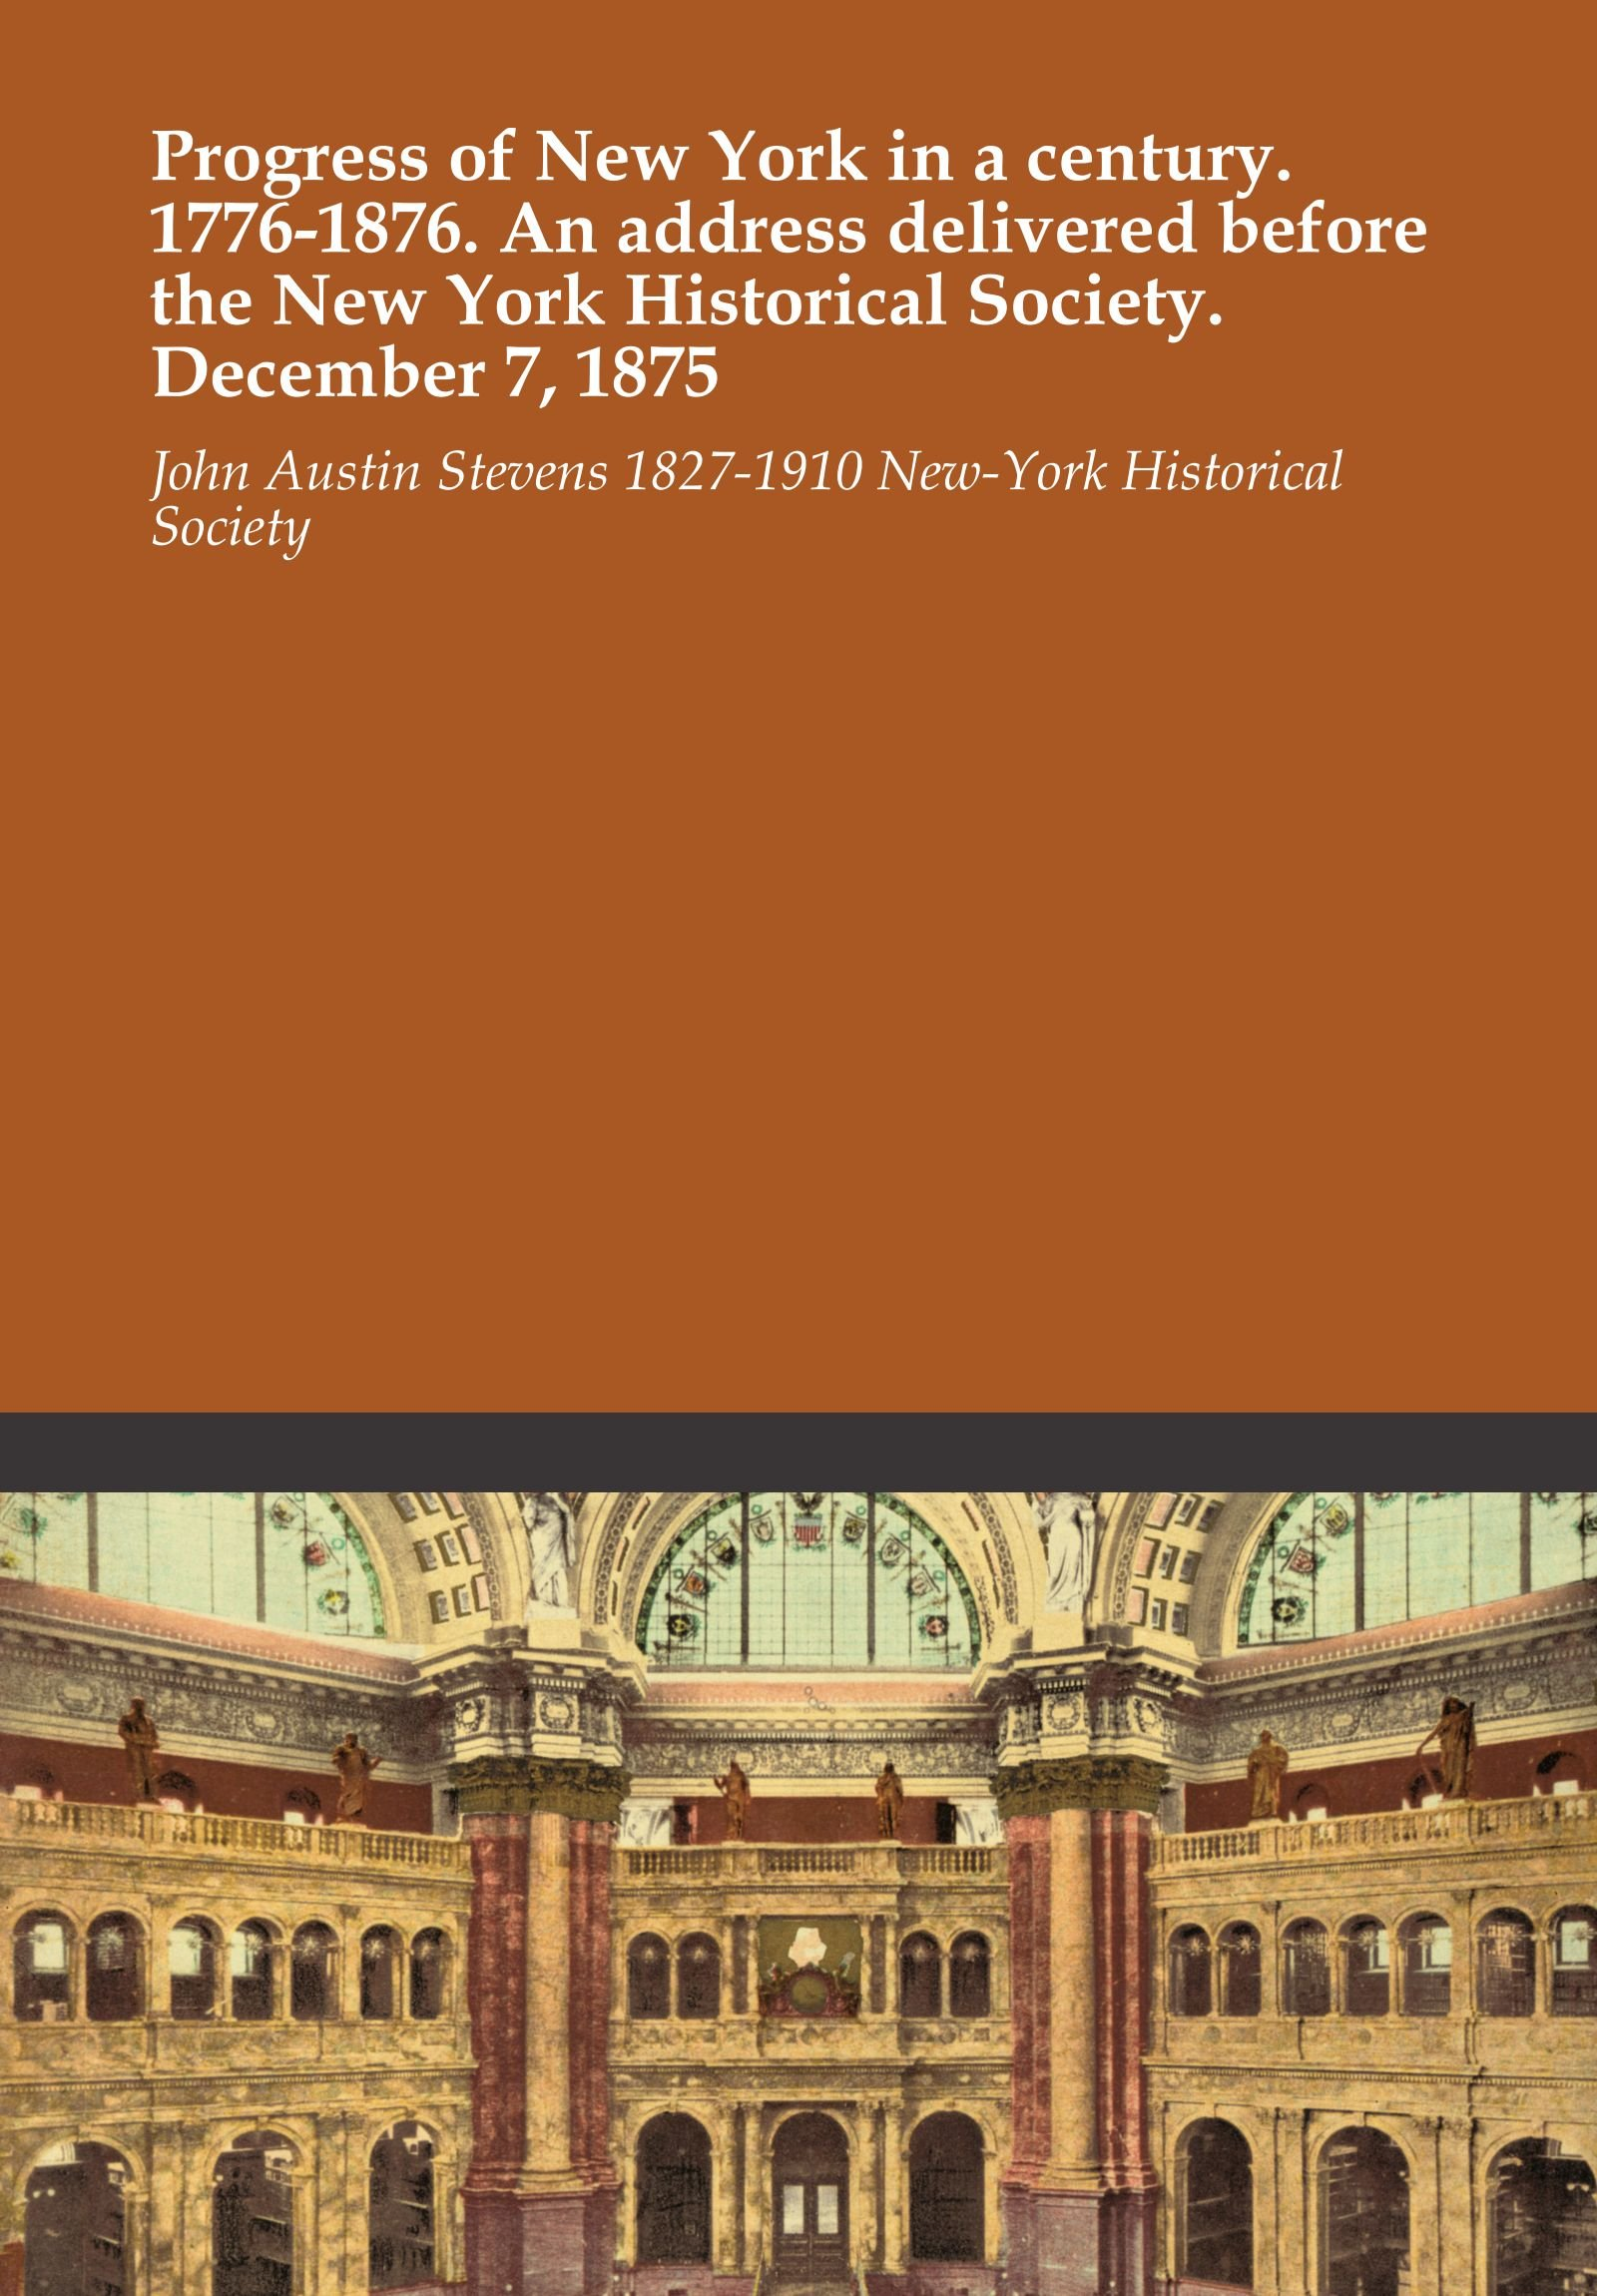 Progress of New York in a century. 1776-1876. An address delivered before the New York Historical Society. December 7, 1875 pdf